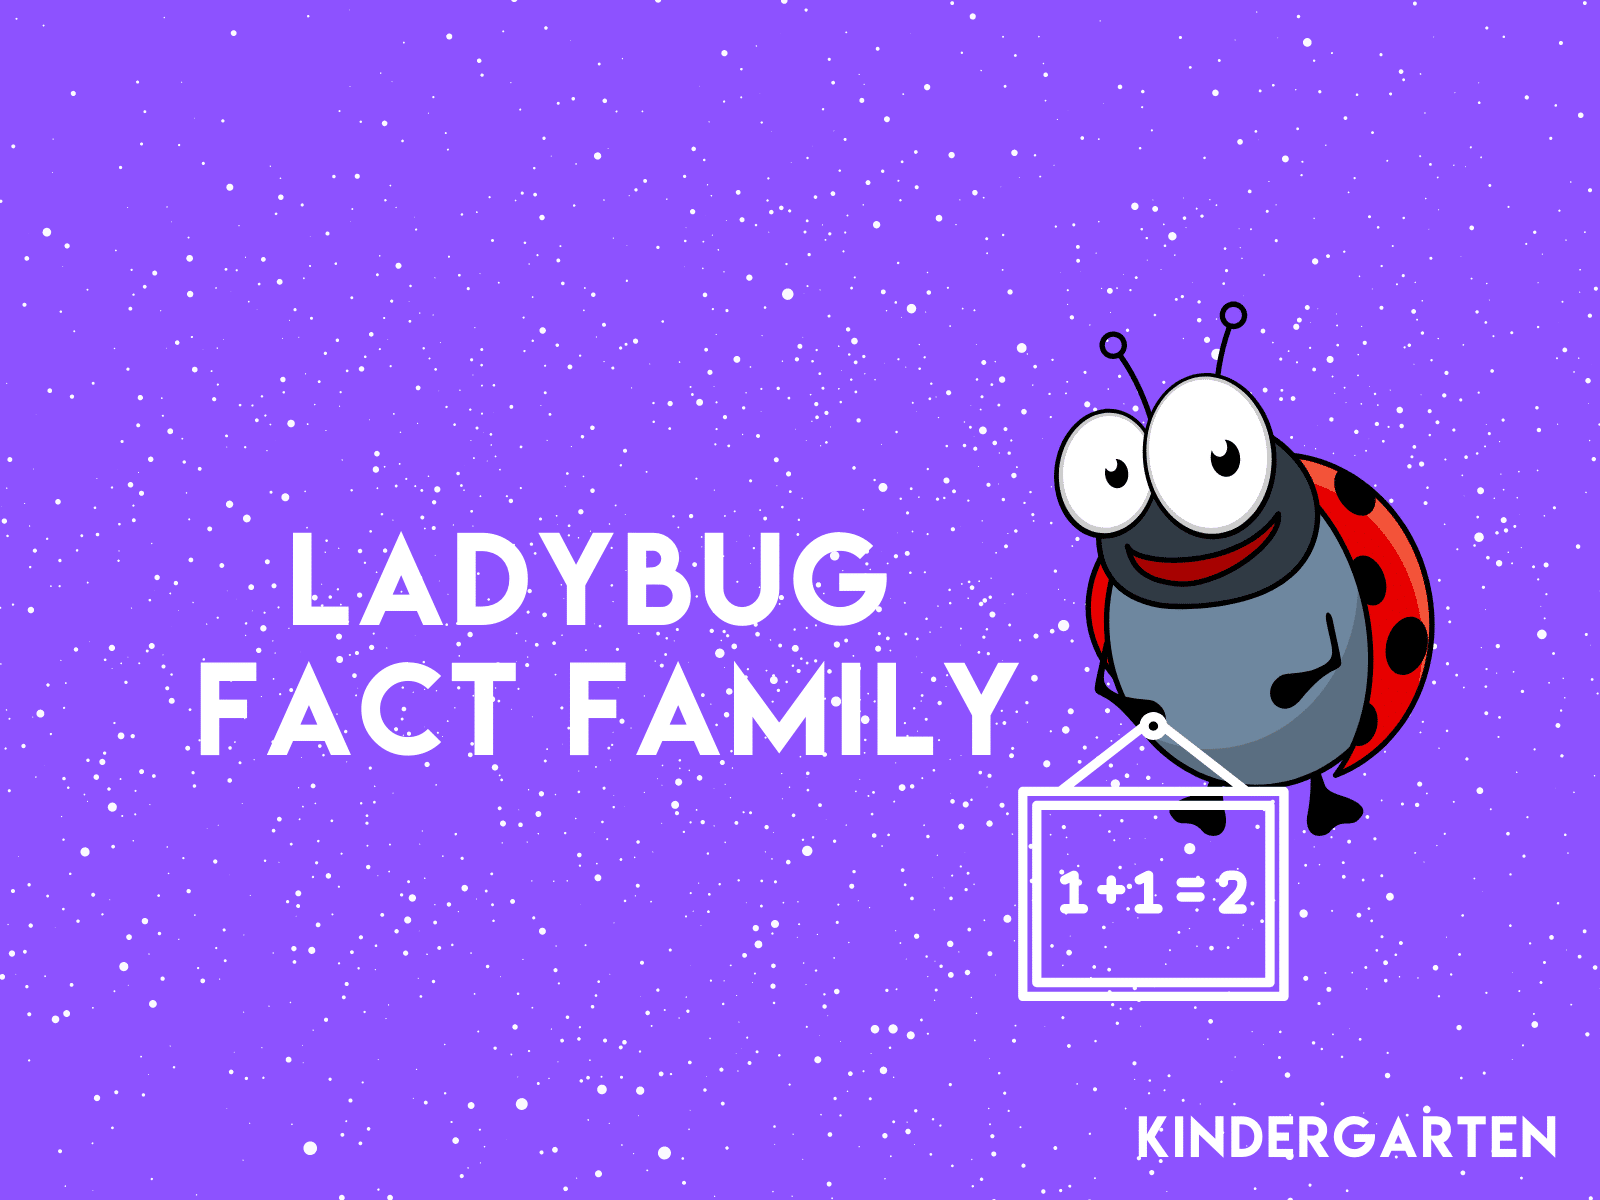 Kindergarten Ladybug Fact Family | Free learning resources for kids